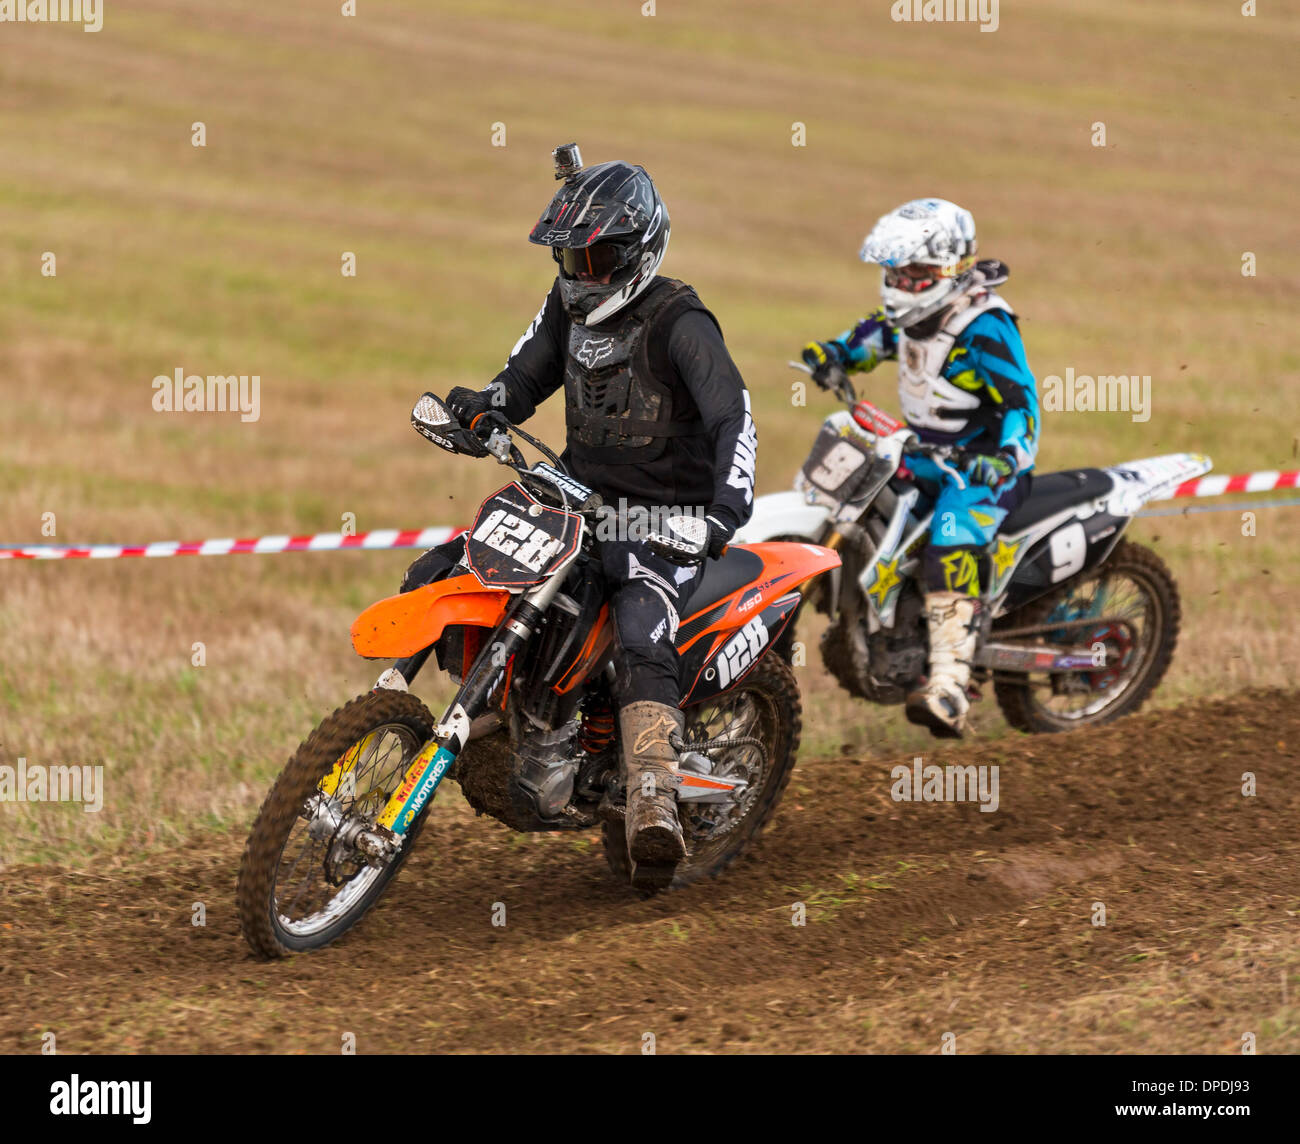 Aberdeenshire, Scotland, UK . 12th Jan, 2014. This is some of the actions scenes from the Aberdeen & District Motocross Club, Stubble Park Race on 12 January 2014 at Fornet Farm, Lyne of Skene, Aberdeenshire, Scotalnd, United Kingdom. Credit:  JASPERIMAGE/Alamy Live News - Stock Image